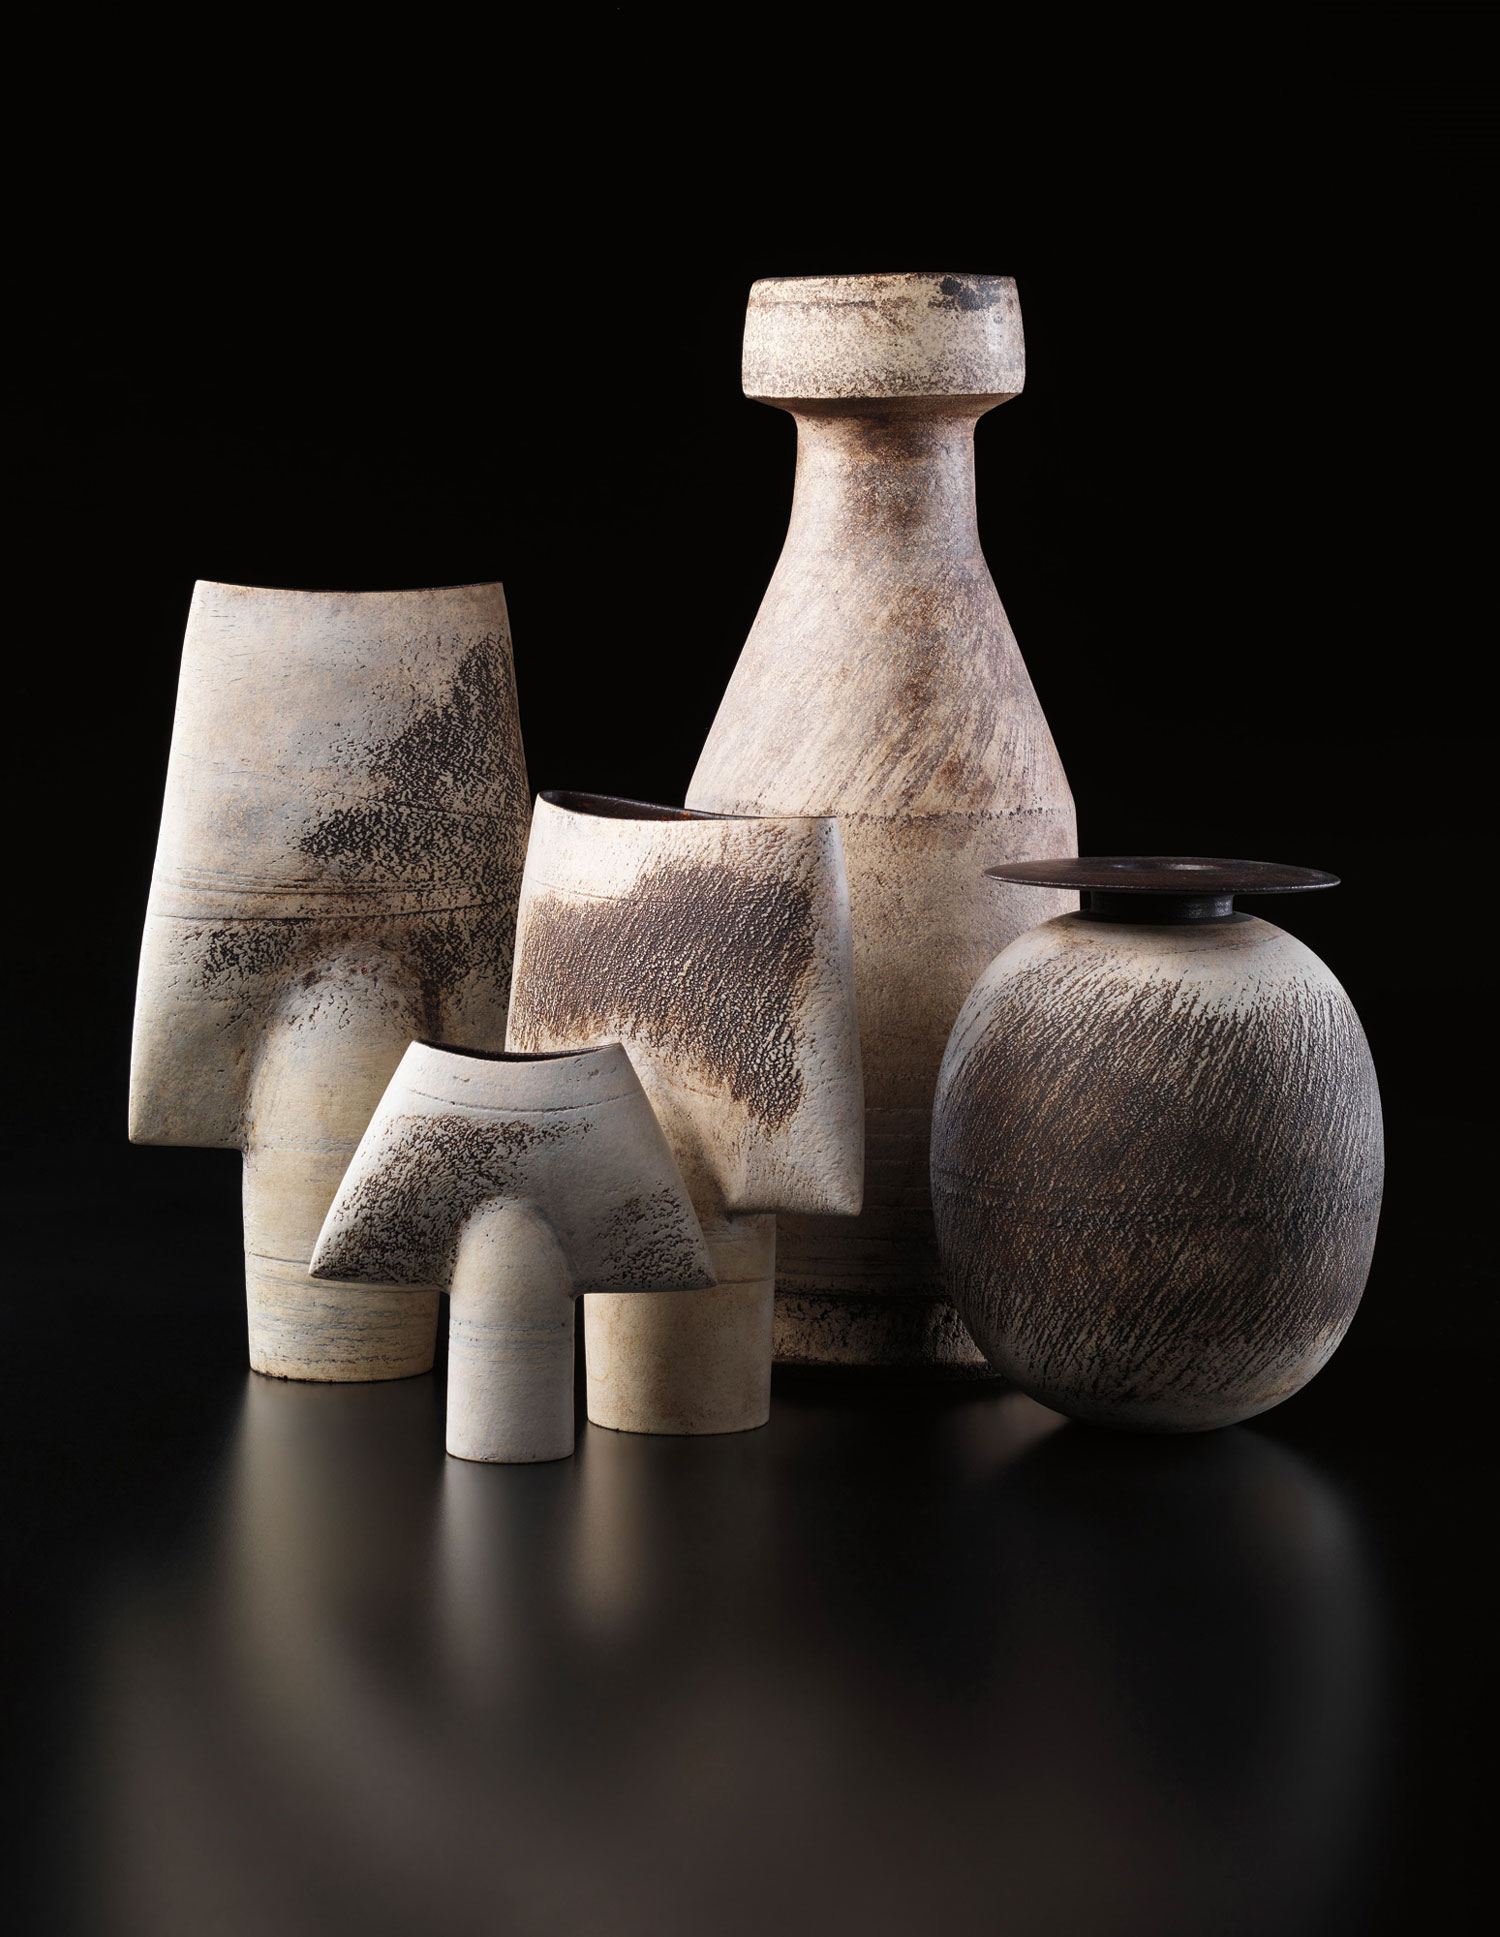 A carefully chosen selection of significant works by Hans Coper was assembled by influential American collectors Betty Lee and Aaron Stern. The Phillips New York sale of the collection in late 2013 established a new price scale for the artist's designs. In this grouping of vases, the ovoid form with disc top at right, made about 1969, brought $100,000. Phillips image